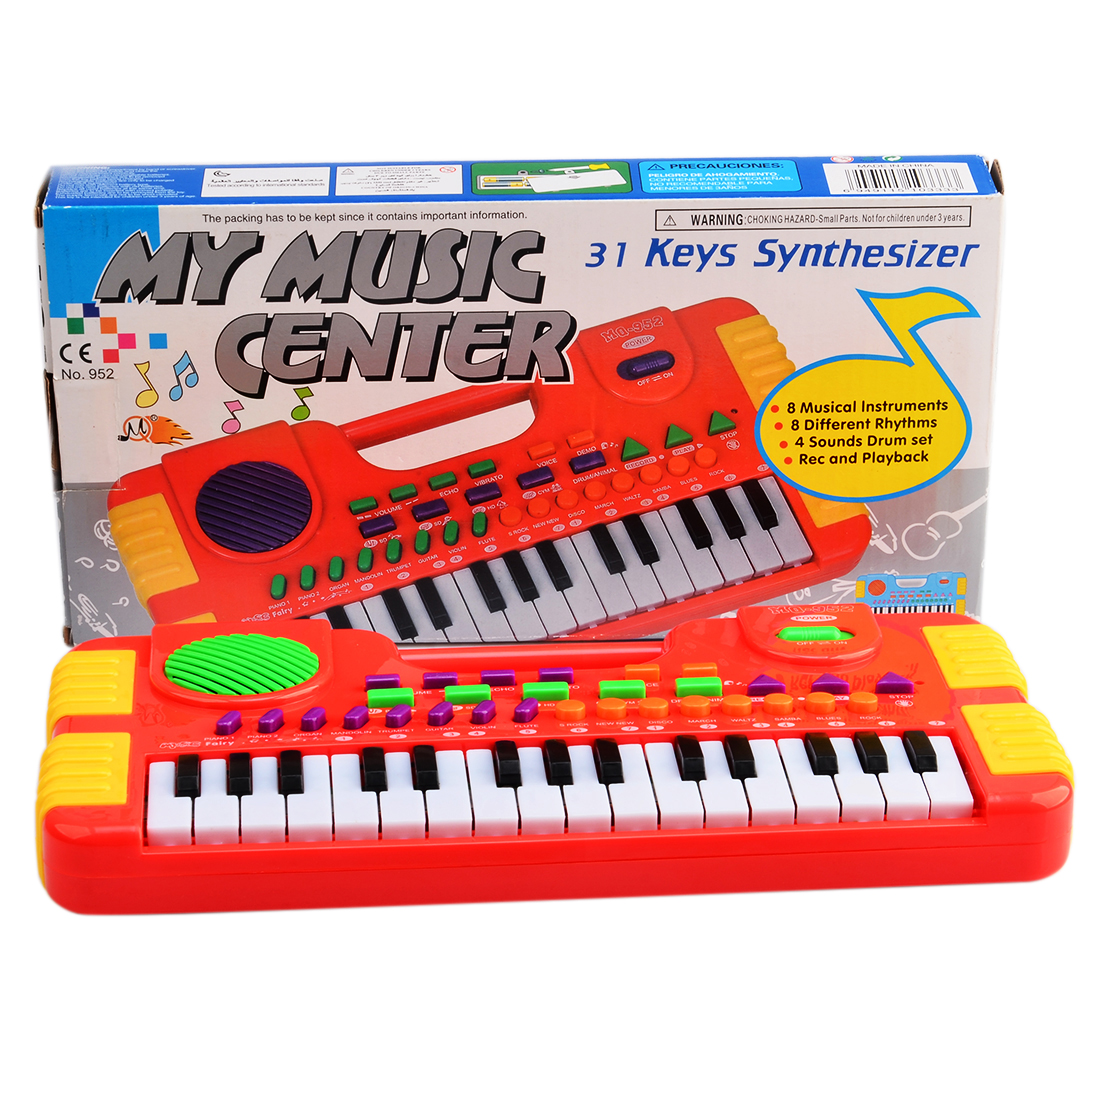 31 Key Synthesizer Electronic Keyboard Piano Musical Toy for Children 952 - Red